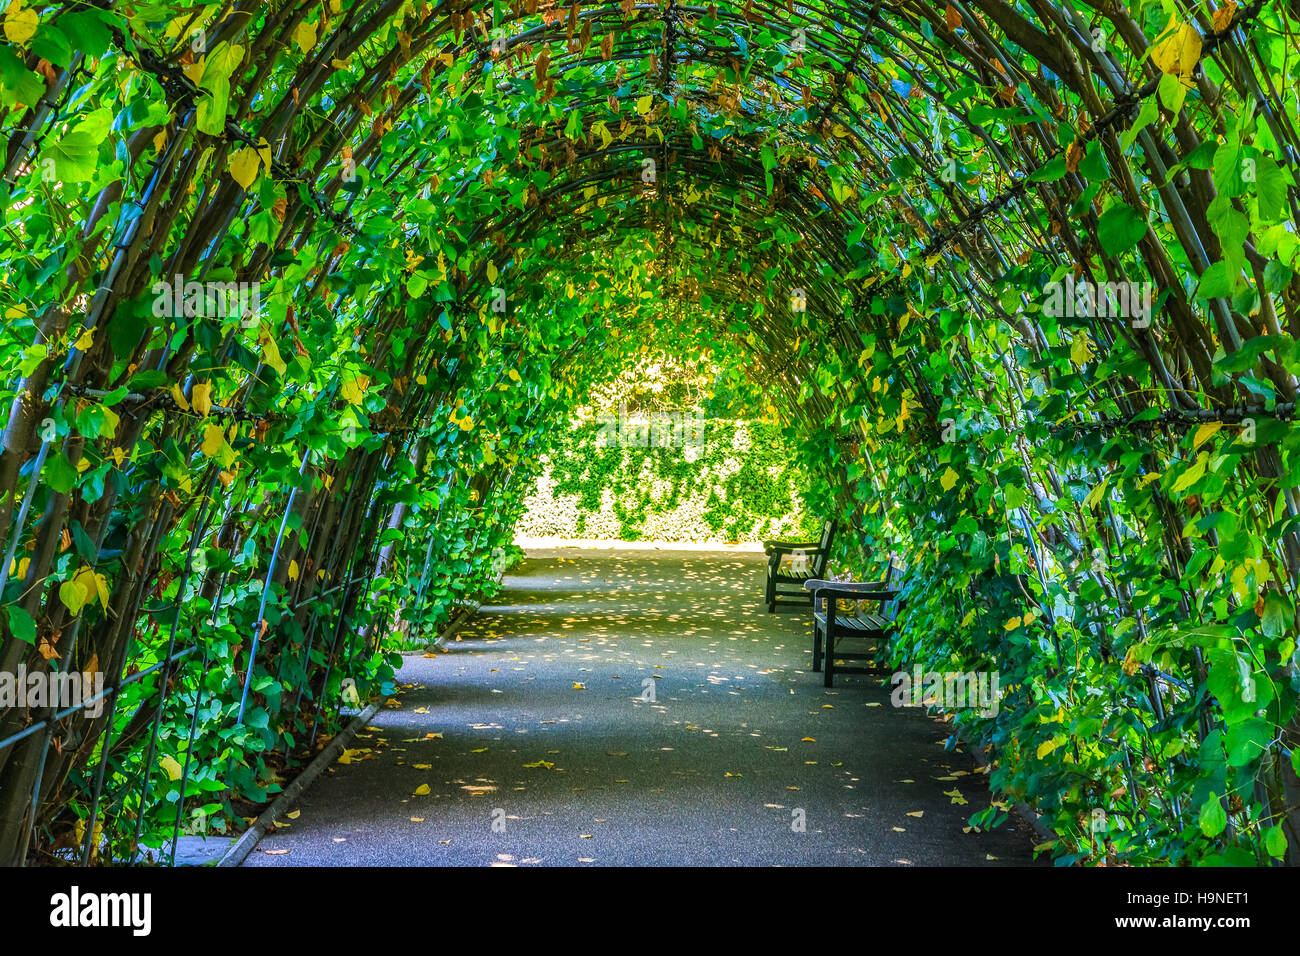 Vine tunnel stock photos vine tunnel stock images alamy for Kensington park